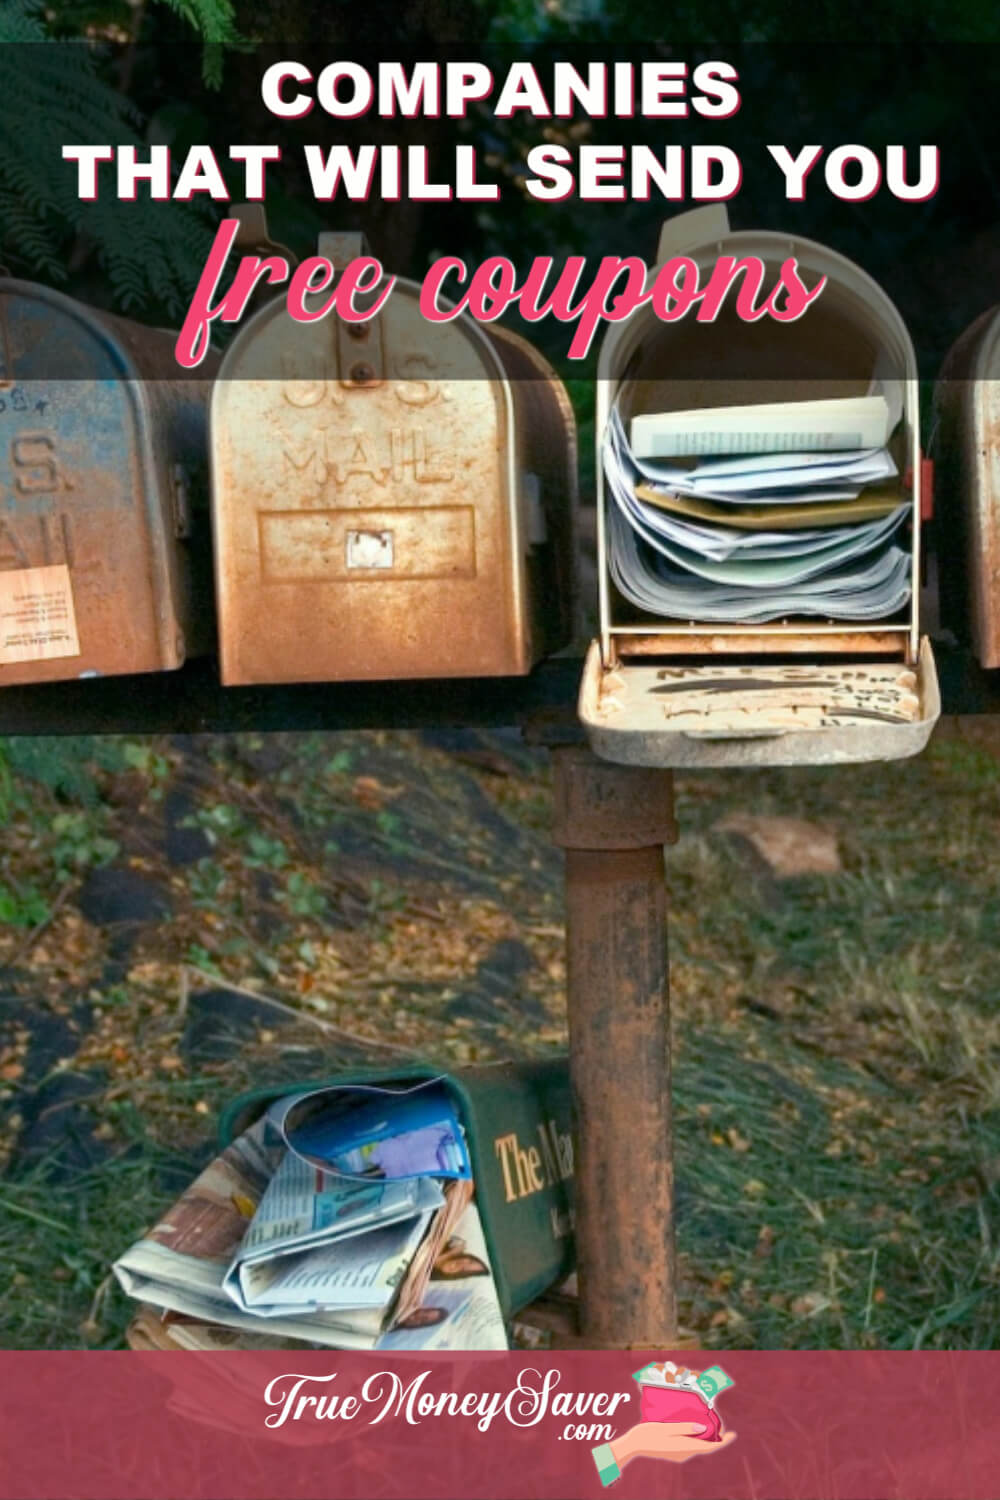 Did you know you can get free coupons by mail? Here\'s over 250 companies to sign up for FREE money saving coupons in the mail! Sign up with these tips! #truemoneysaver #couponcommunity #freebies #couponing #debtfree #coupon #coupons